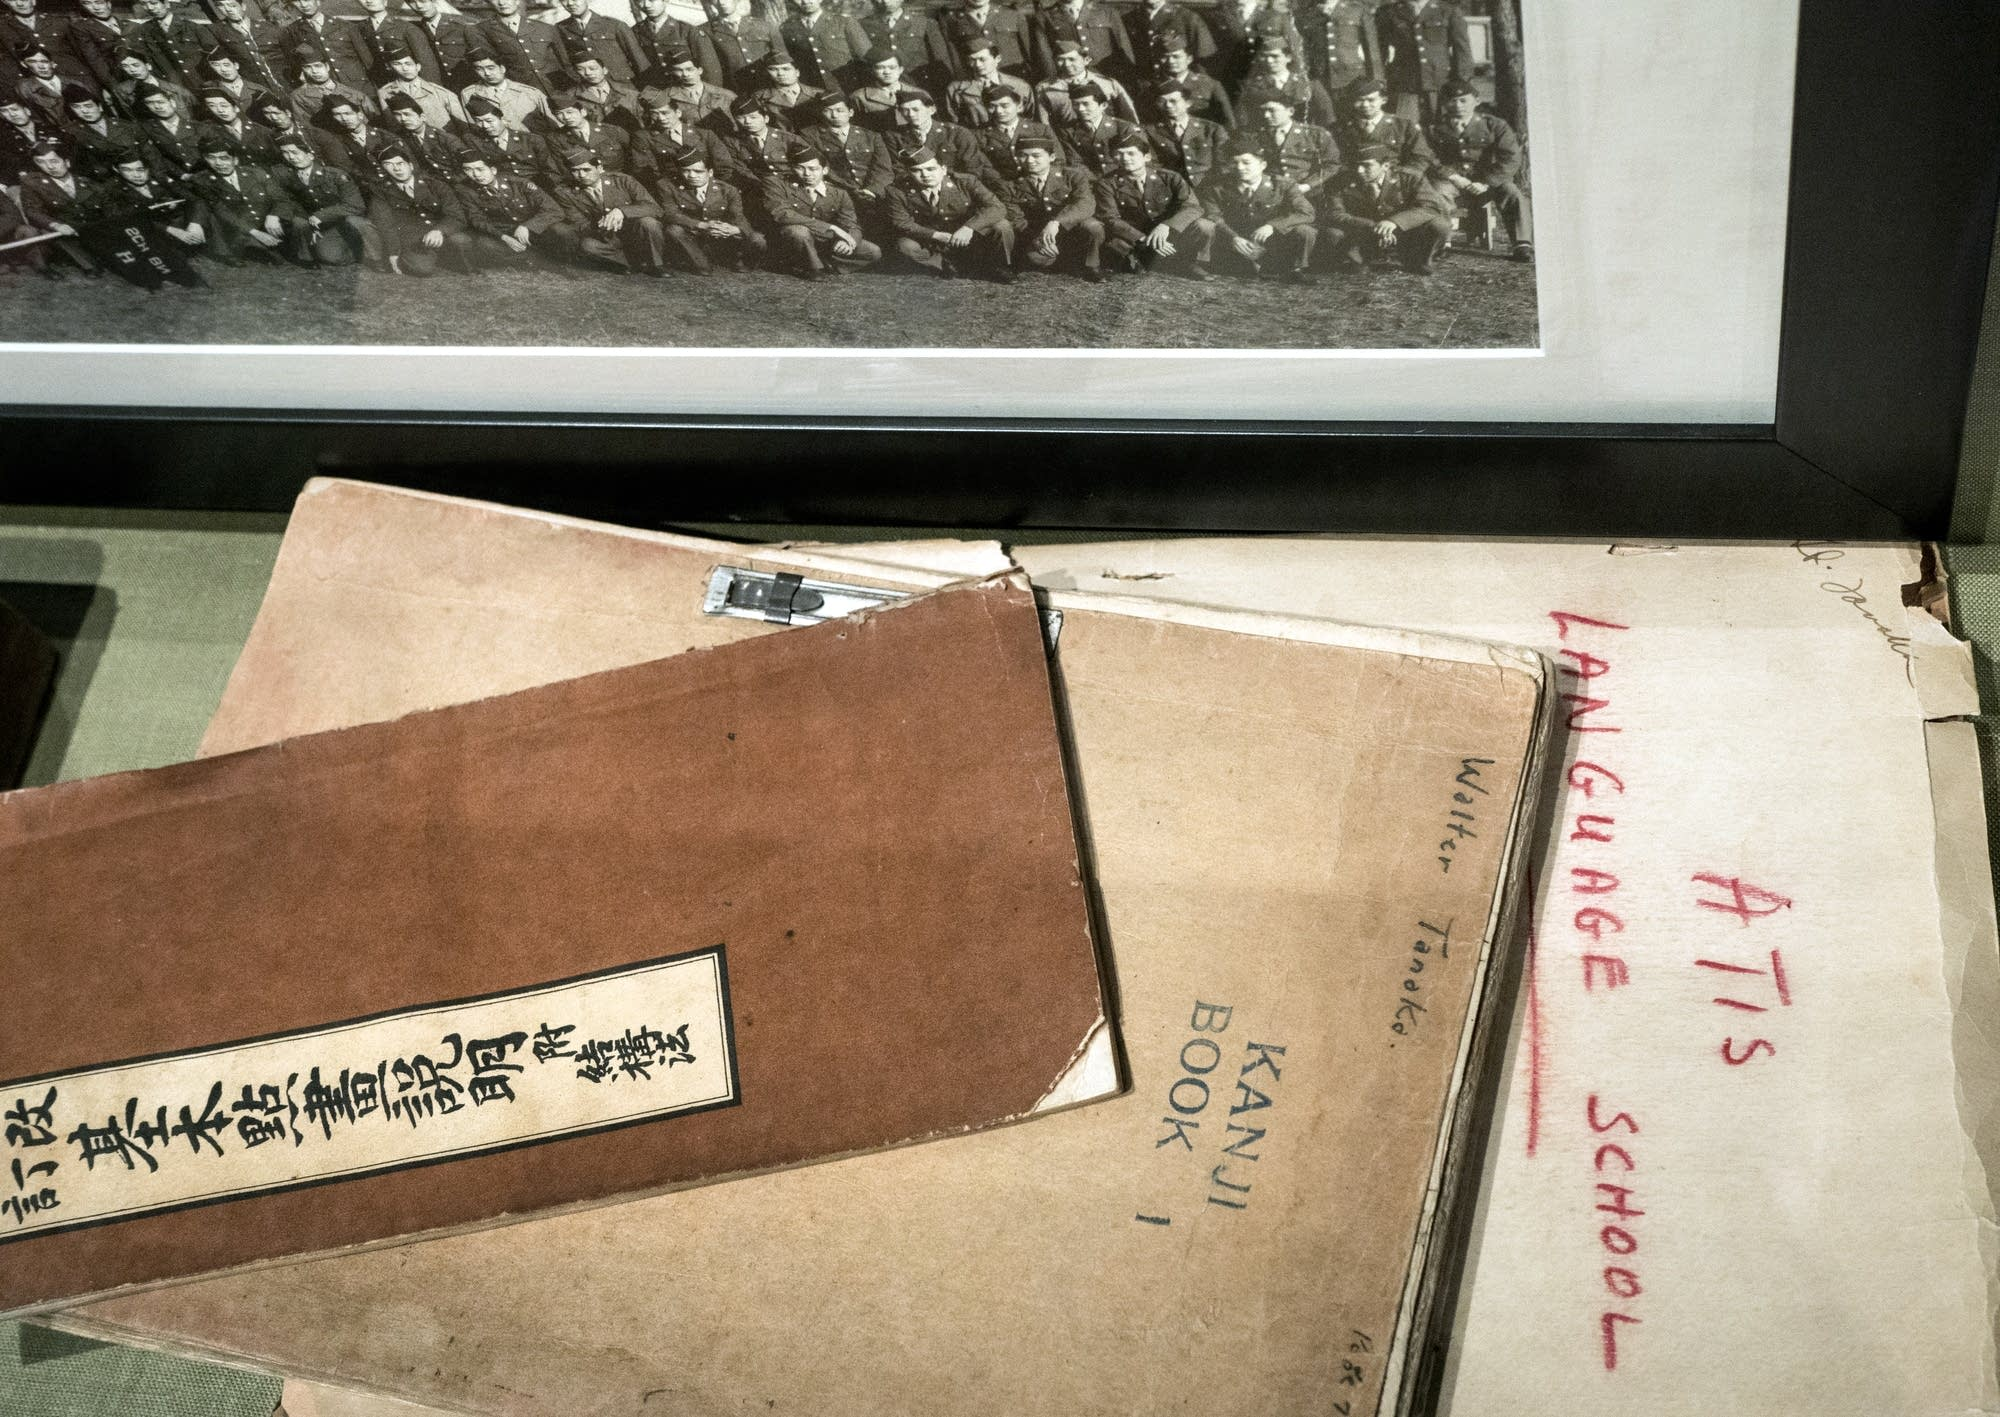 Notebooks from the 1940's are displayed next to a photo.